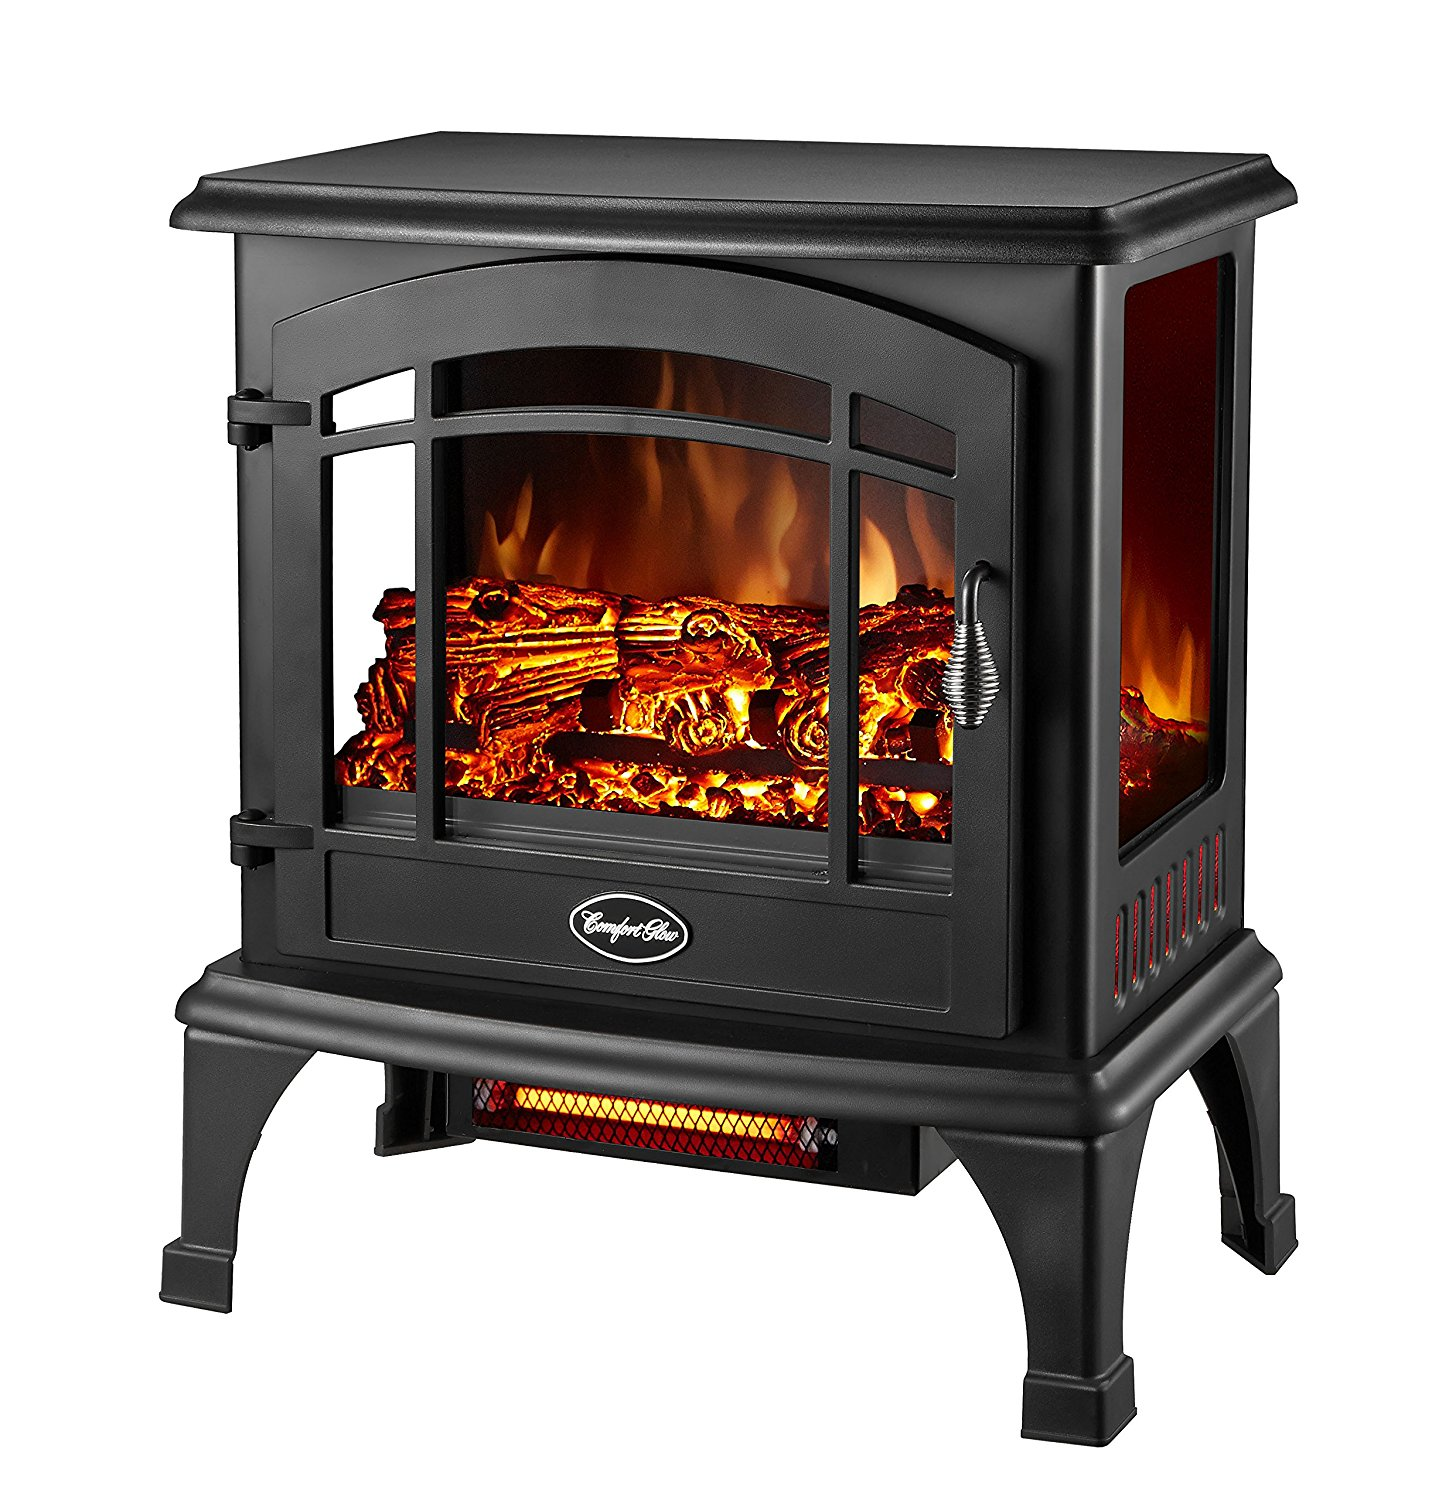 Comfort Glow EQS5140 Compact Thermostatic Electric Stove With Infrared Quartz, 4600 BTU, 700 sq-ft, 1500 W